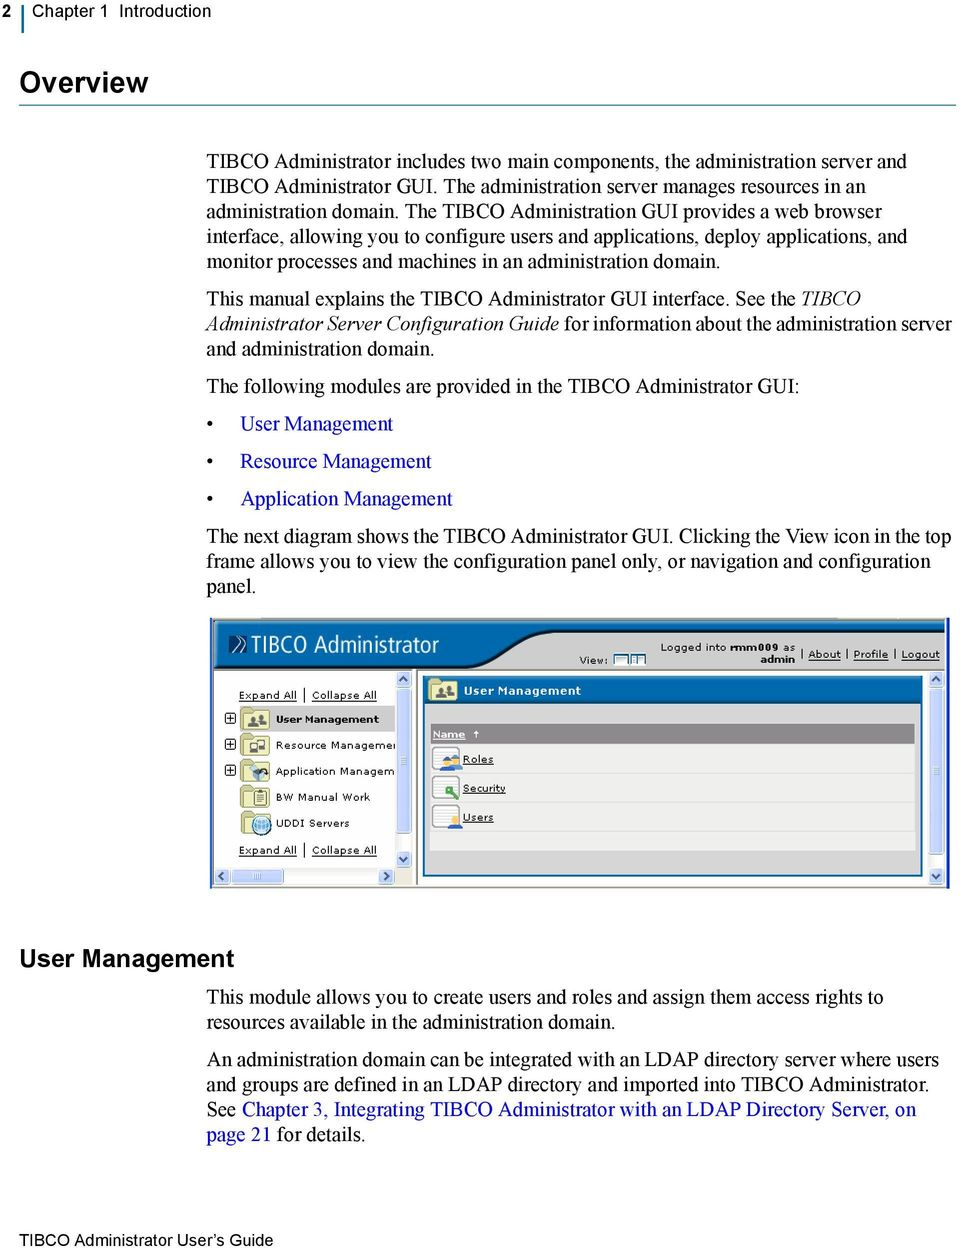 The TIBCO Administration GUI provides a web browser interface, allowing you to configure users and applications, deploy applications, and monitor processes and machines in an administration domain.